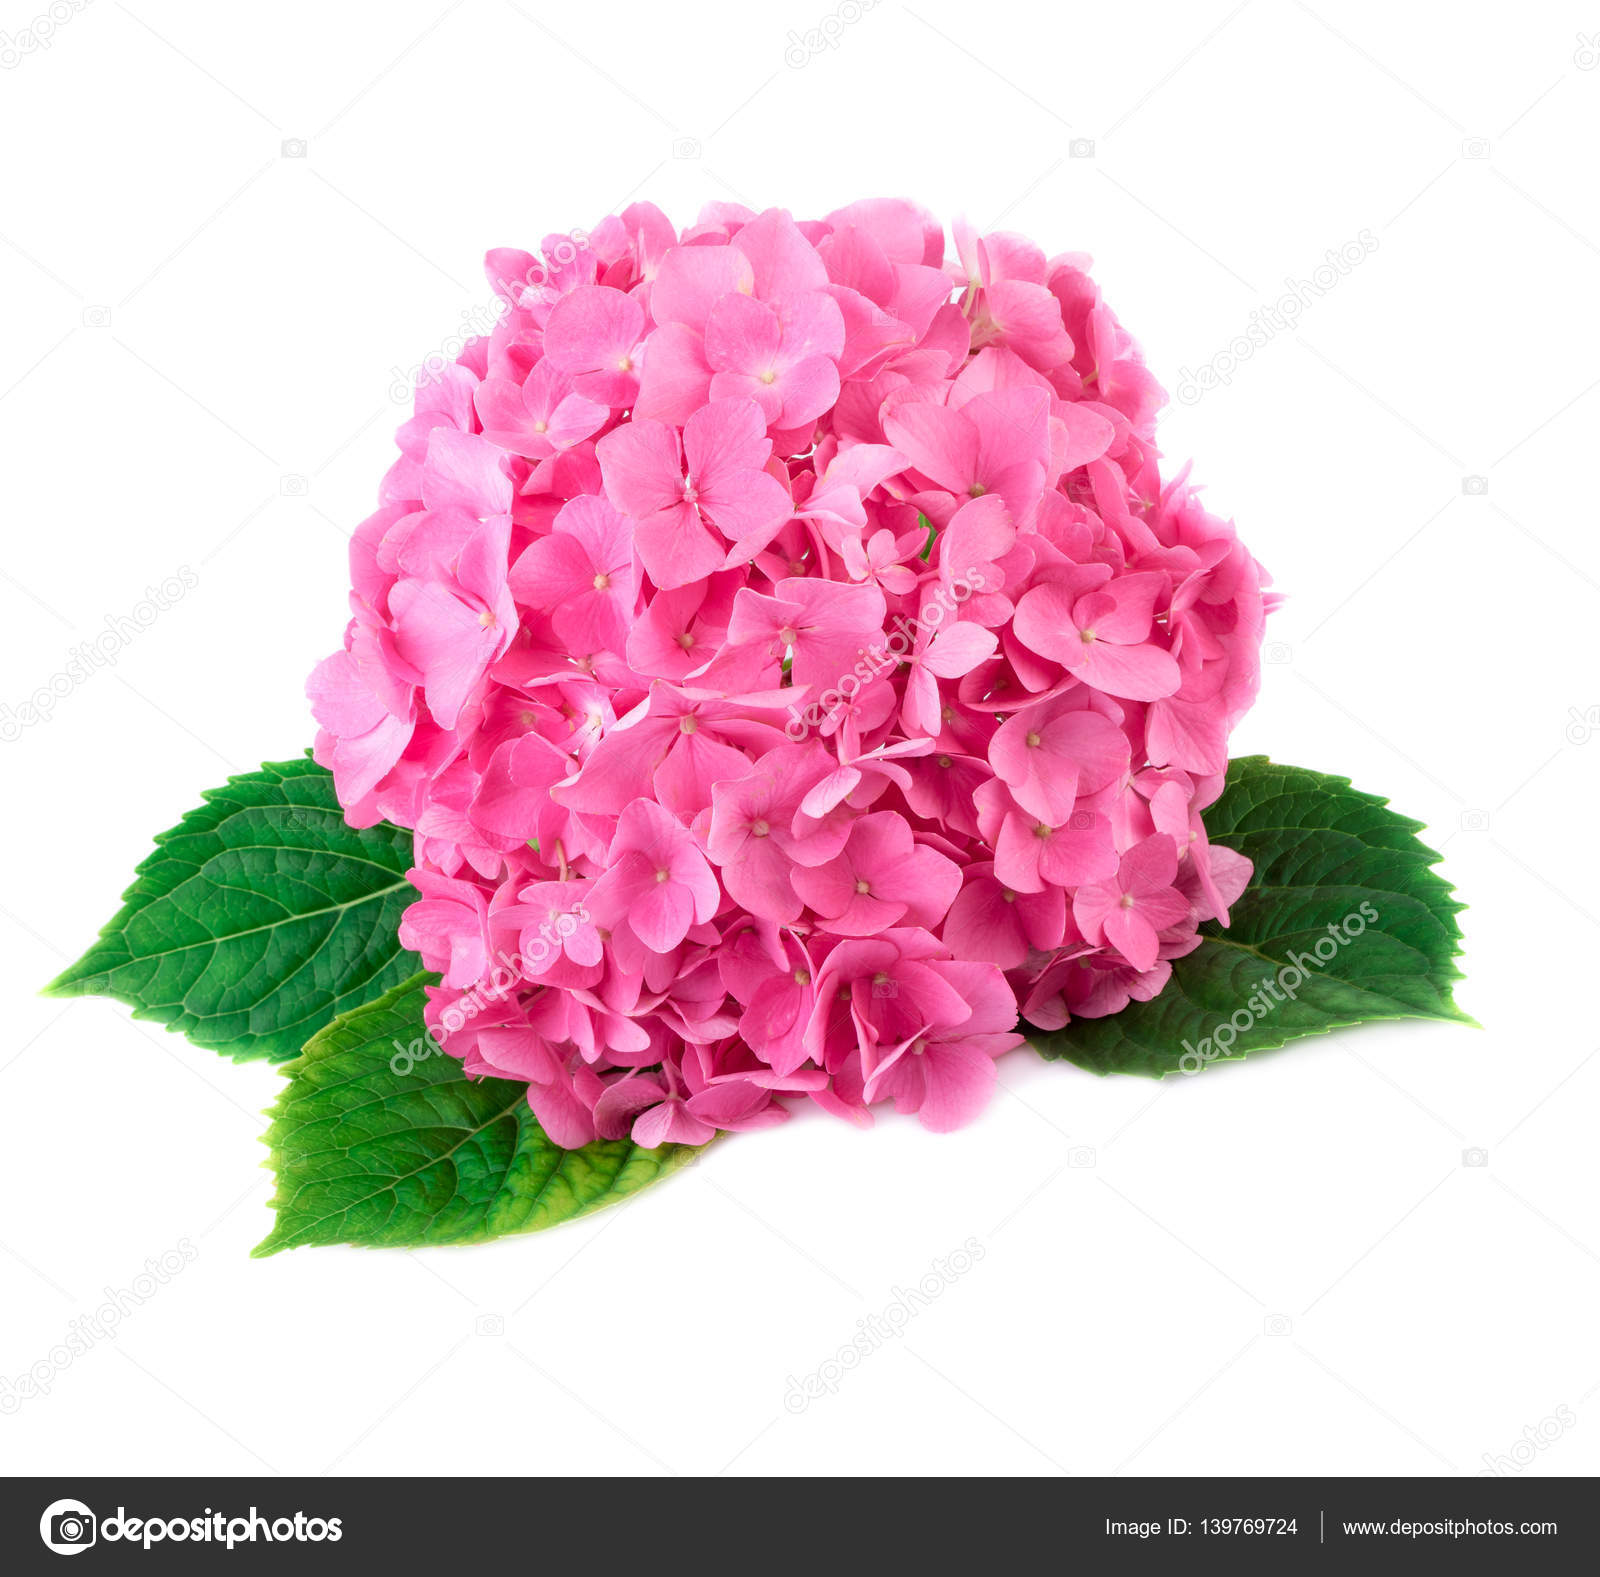 Hortensia Flower Close Up Pink Hydrangea Flowers Isolated On White